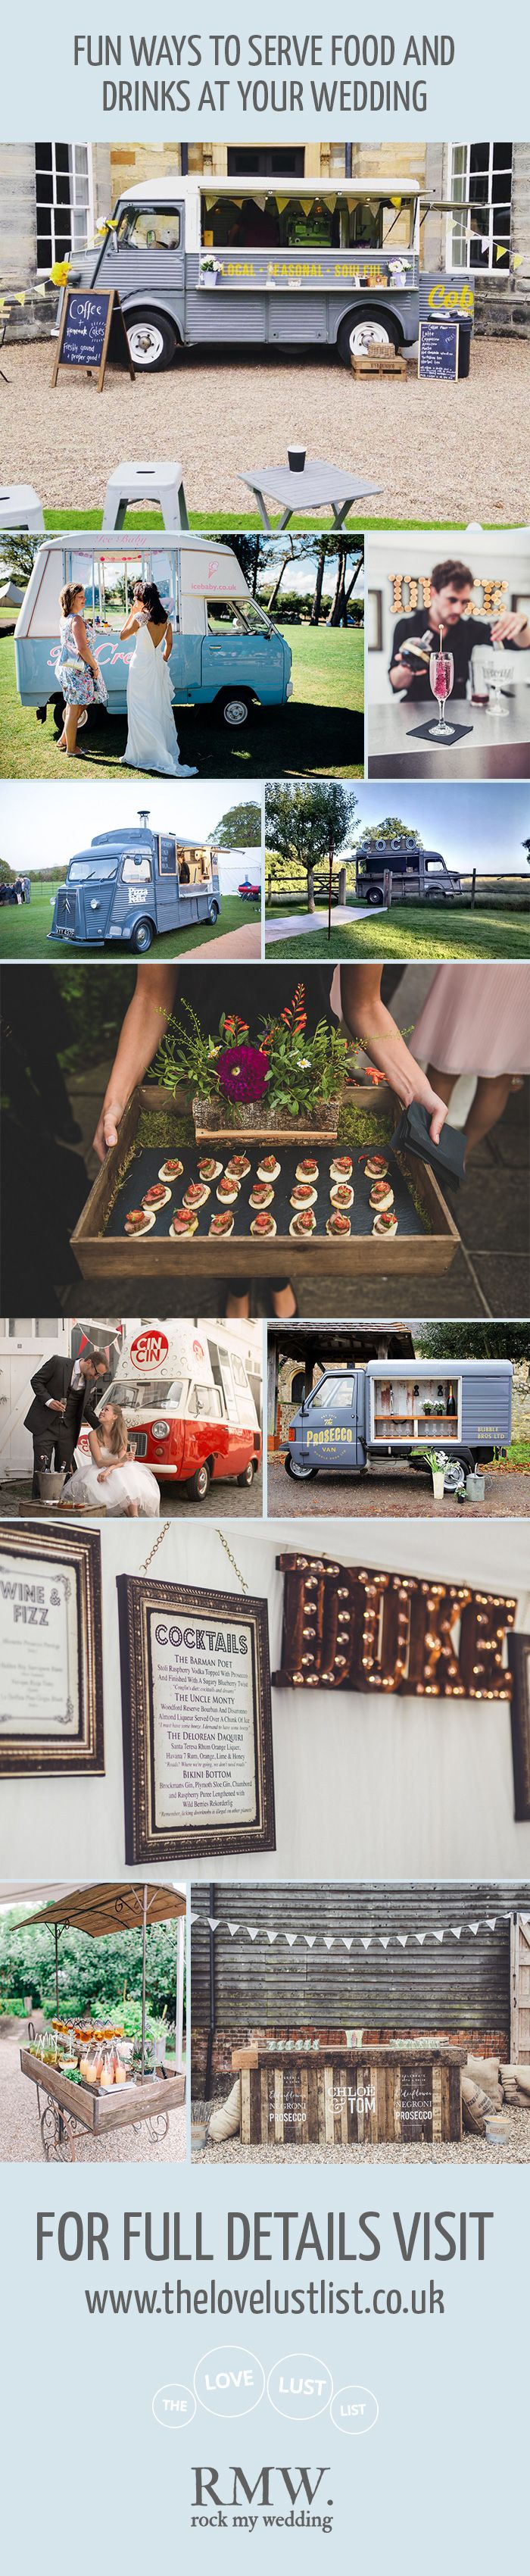 Street Food & Drink Trucks For Wedding And Event Hire From The Love Lust List…